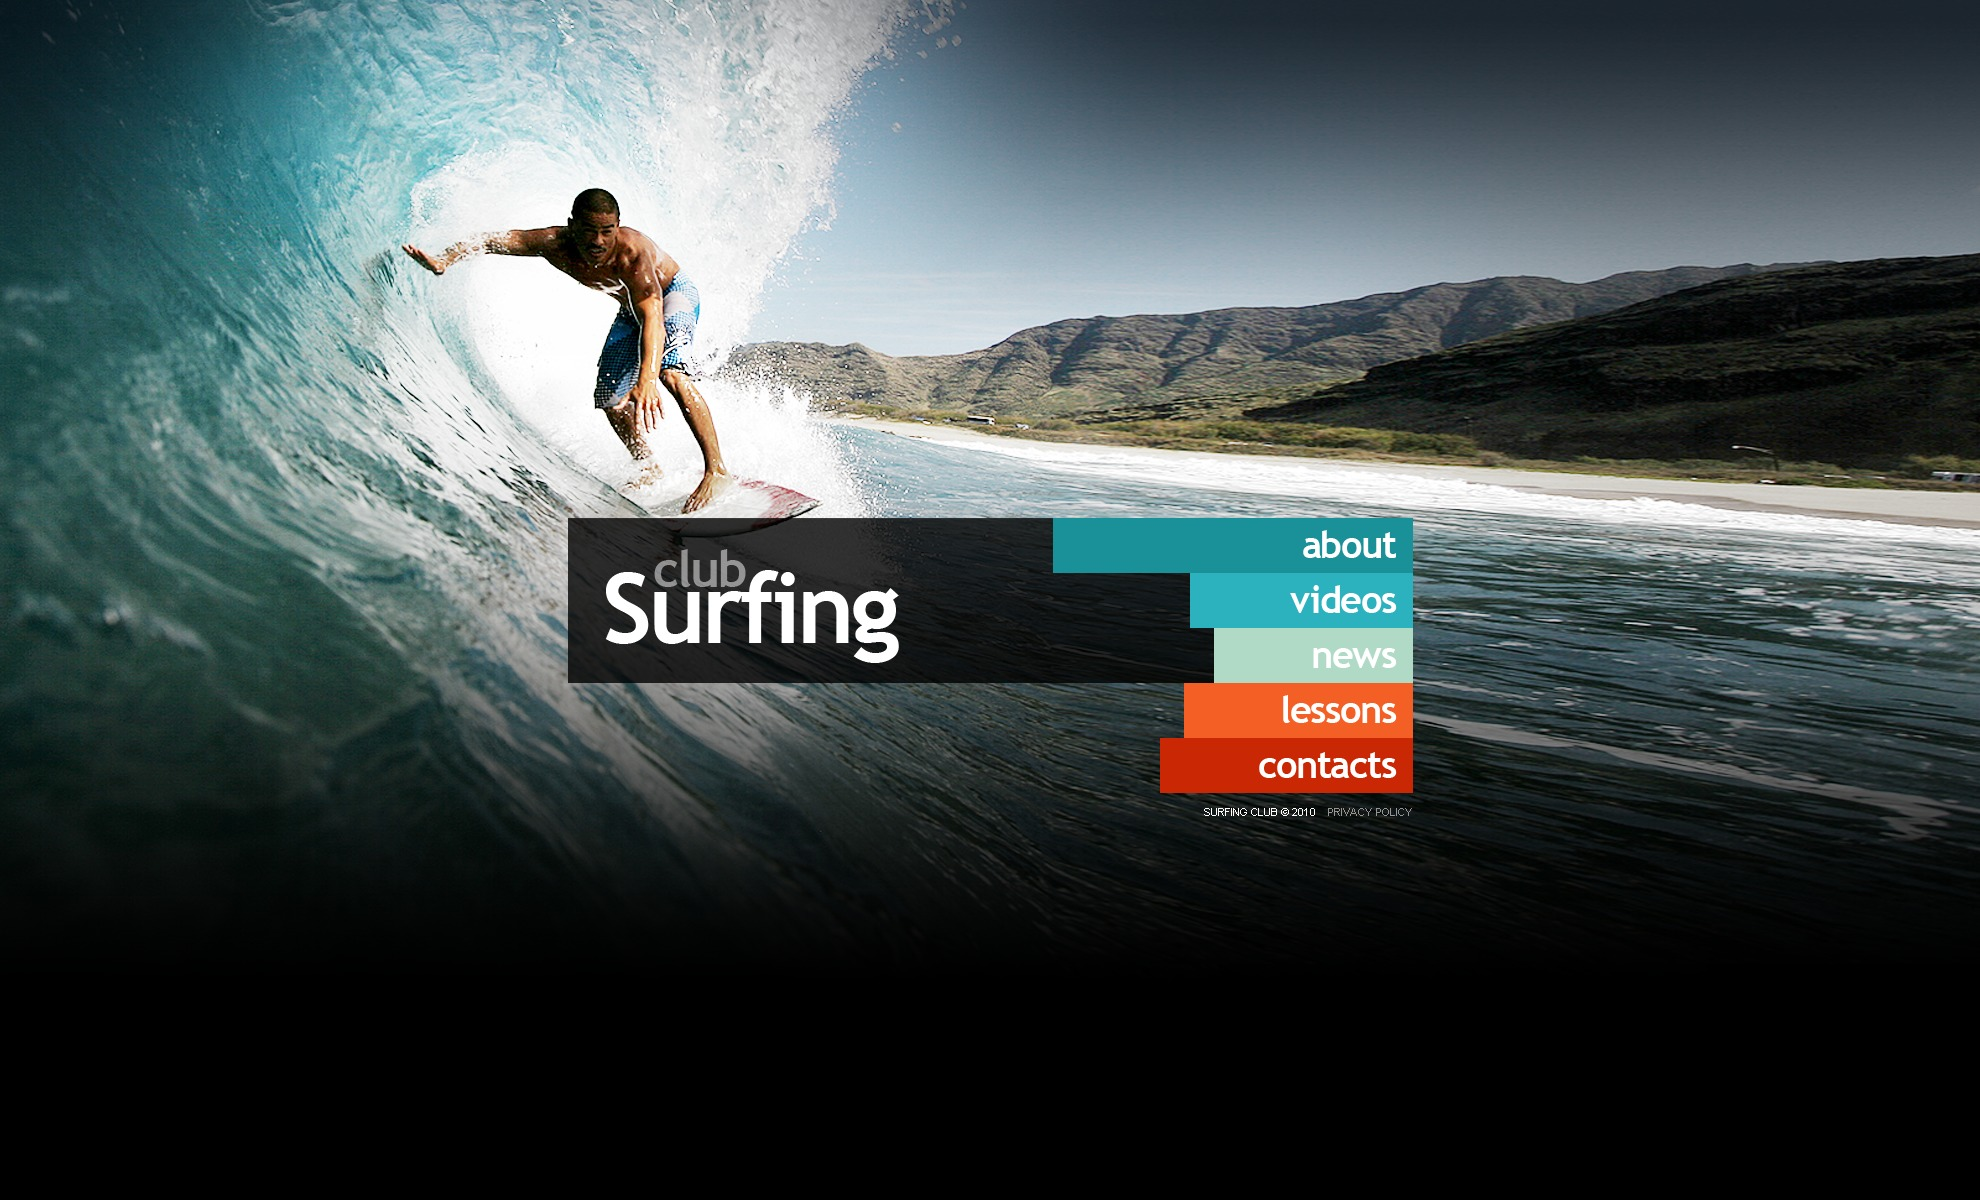 The Surfing Club PSD Design 54316, one of the best PSD templates of its kind (sport, wide), also known as surfing club PSD template, sport PSD template, sea PSD template, ocean PSD template, surf-riding PSD template, board PSD template, team PSD template, shop PSD template, products PSD template, gallery PSD template, surf school PSD template, teachers PSD template, programs and related with surfing club, sport, sea, ocean, surf-riding, board, team, shop, products, gallery, surf school, teachers, programs, etc.